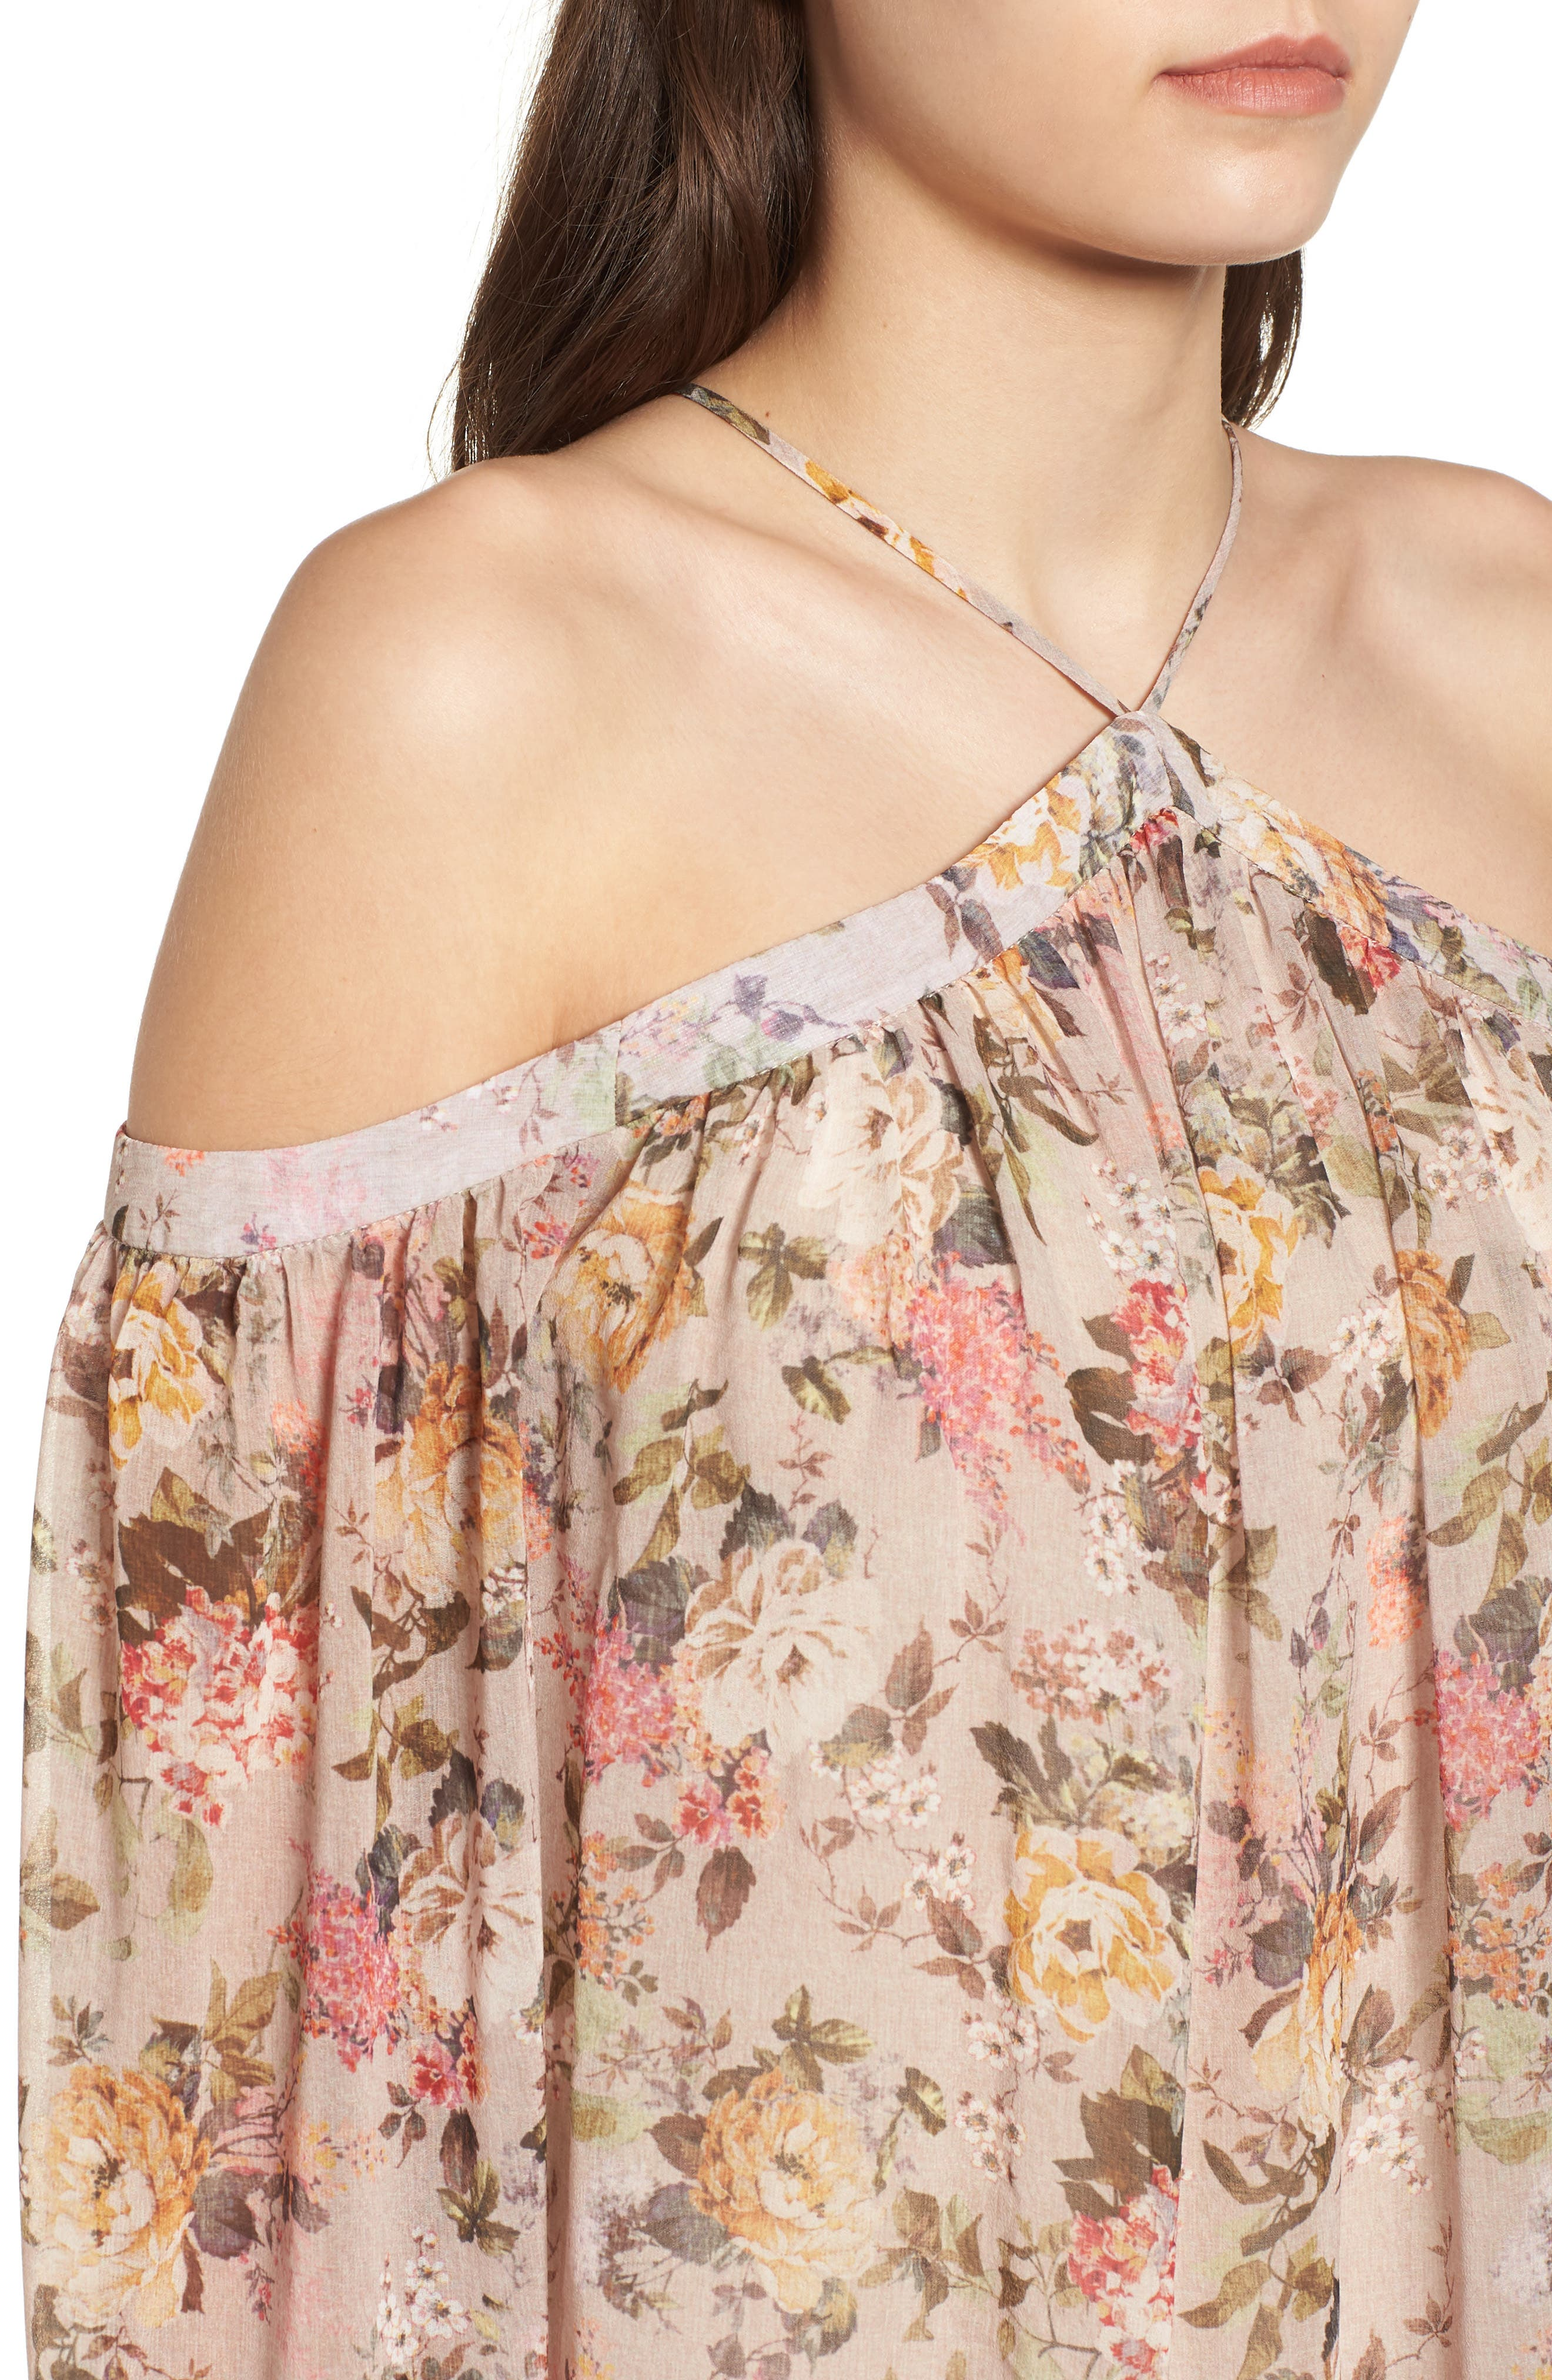 Inamorata Blouse,                             Alternate thumbnail 4, color,                             Blush